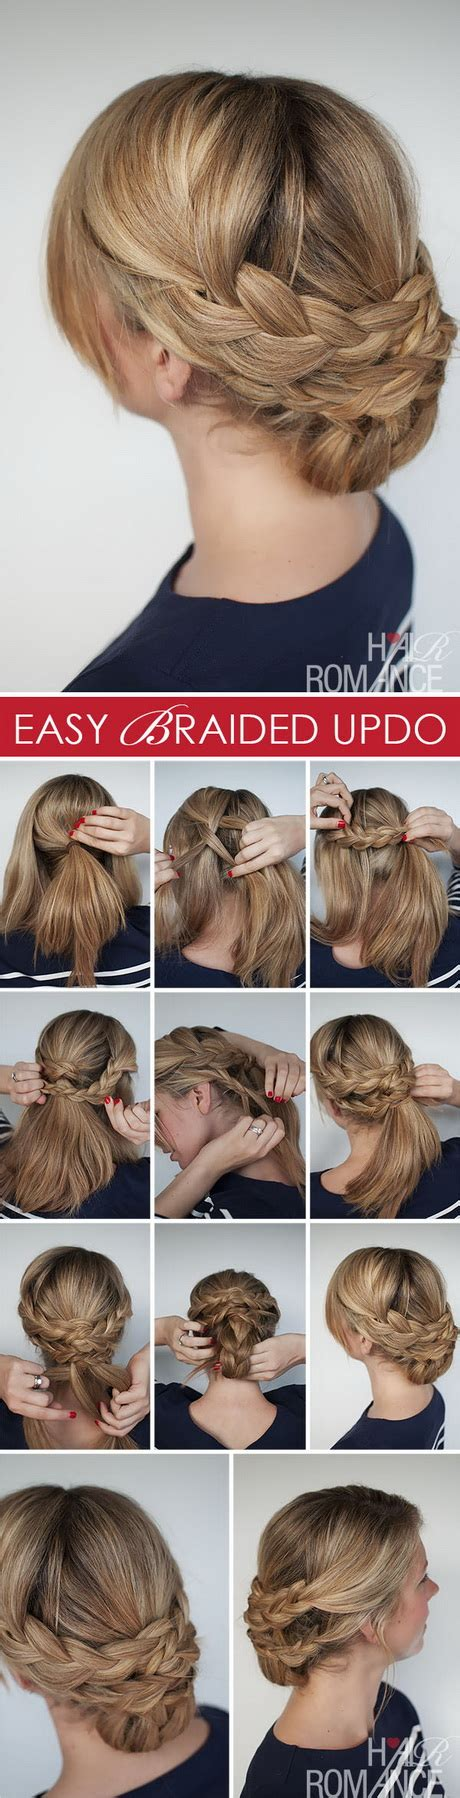 easy braided hairstyles for long hair step by step easy hairstyles for long hair step by step